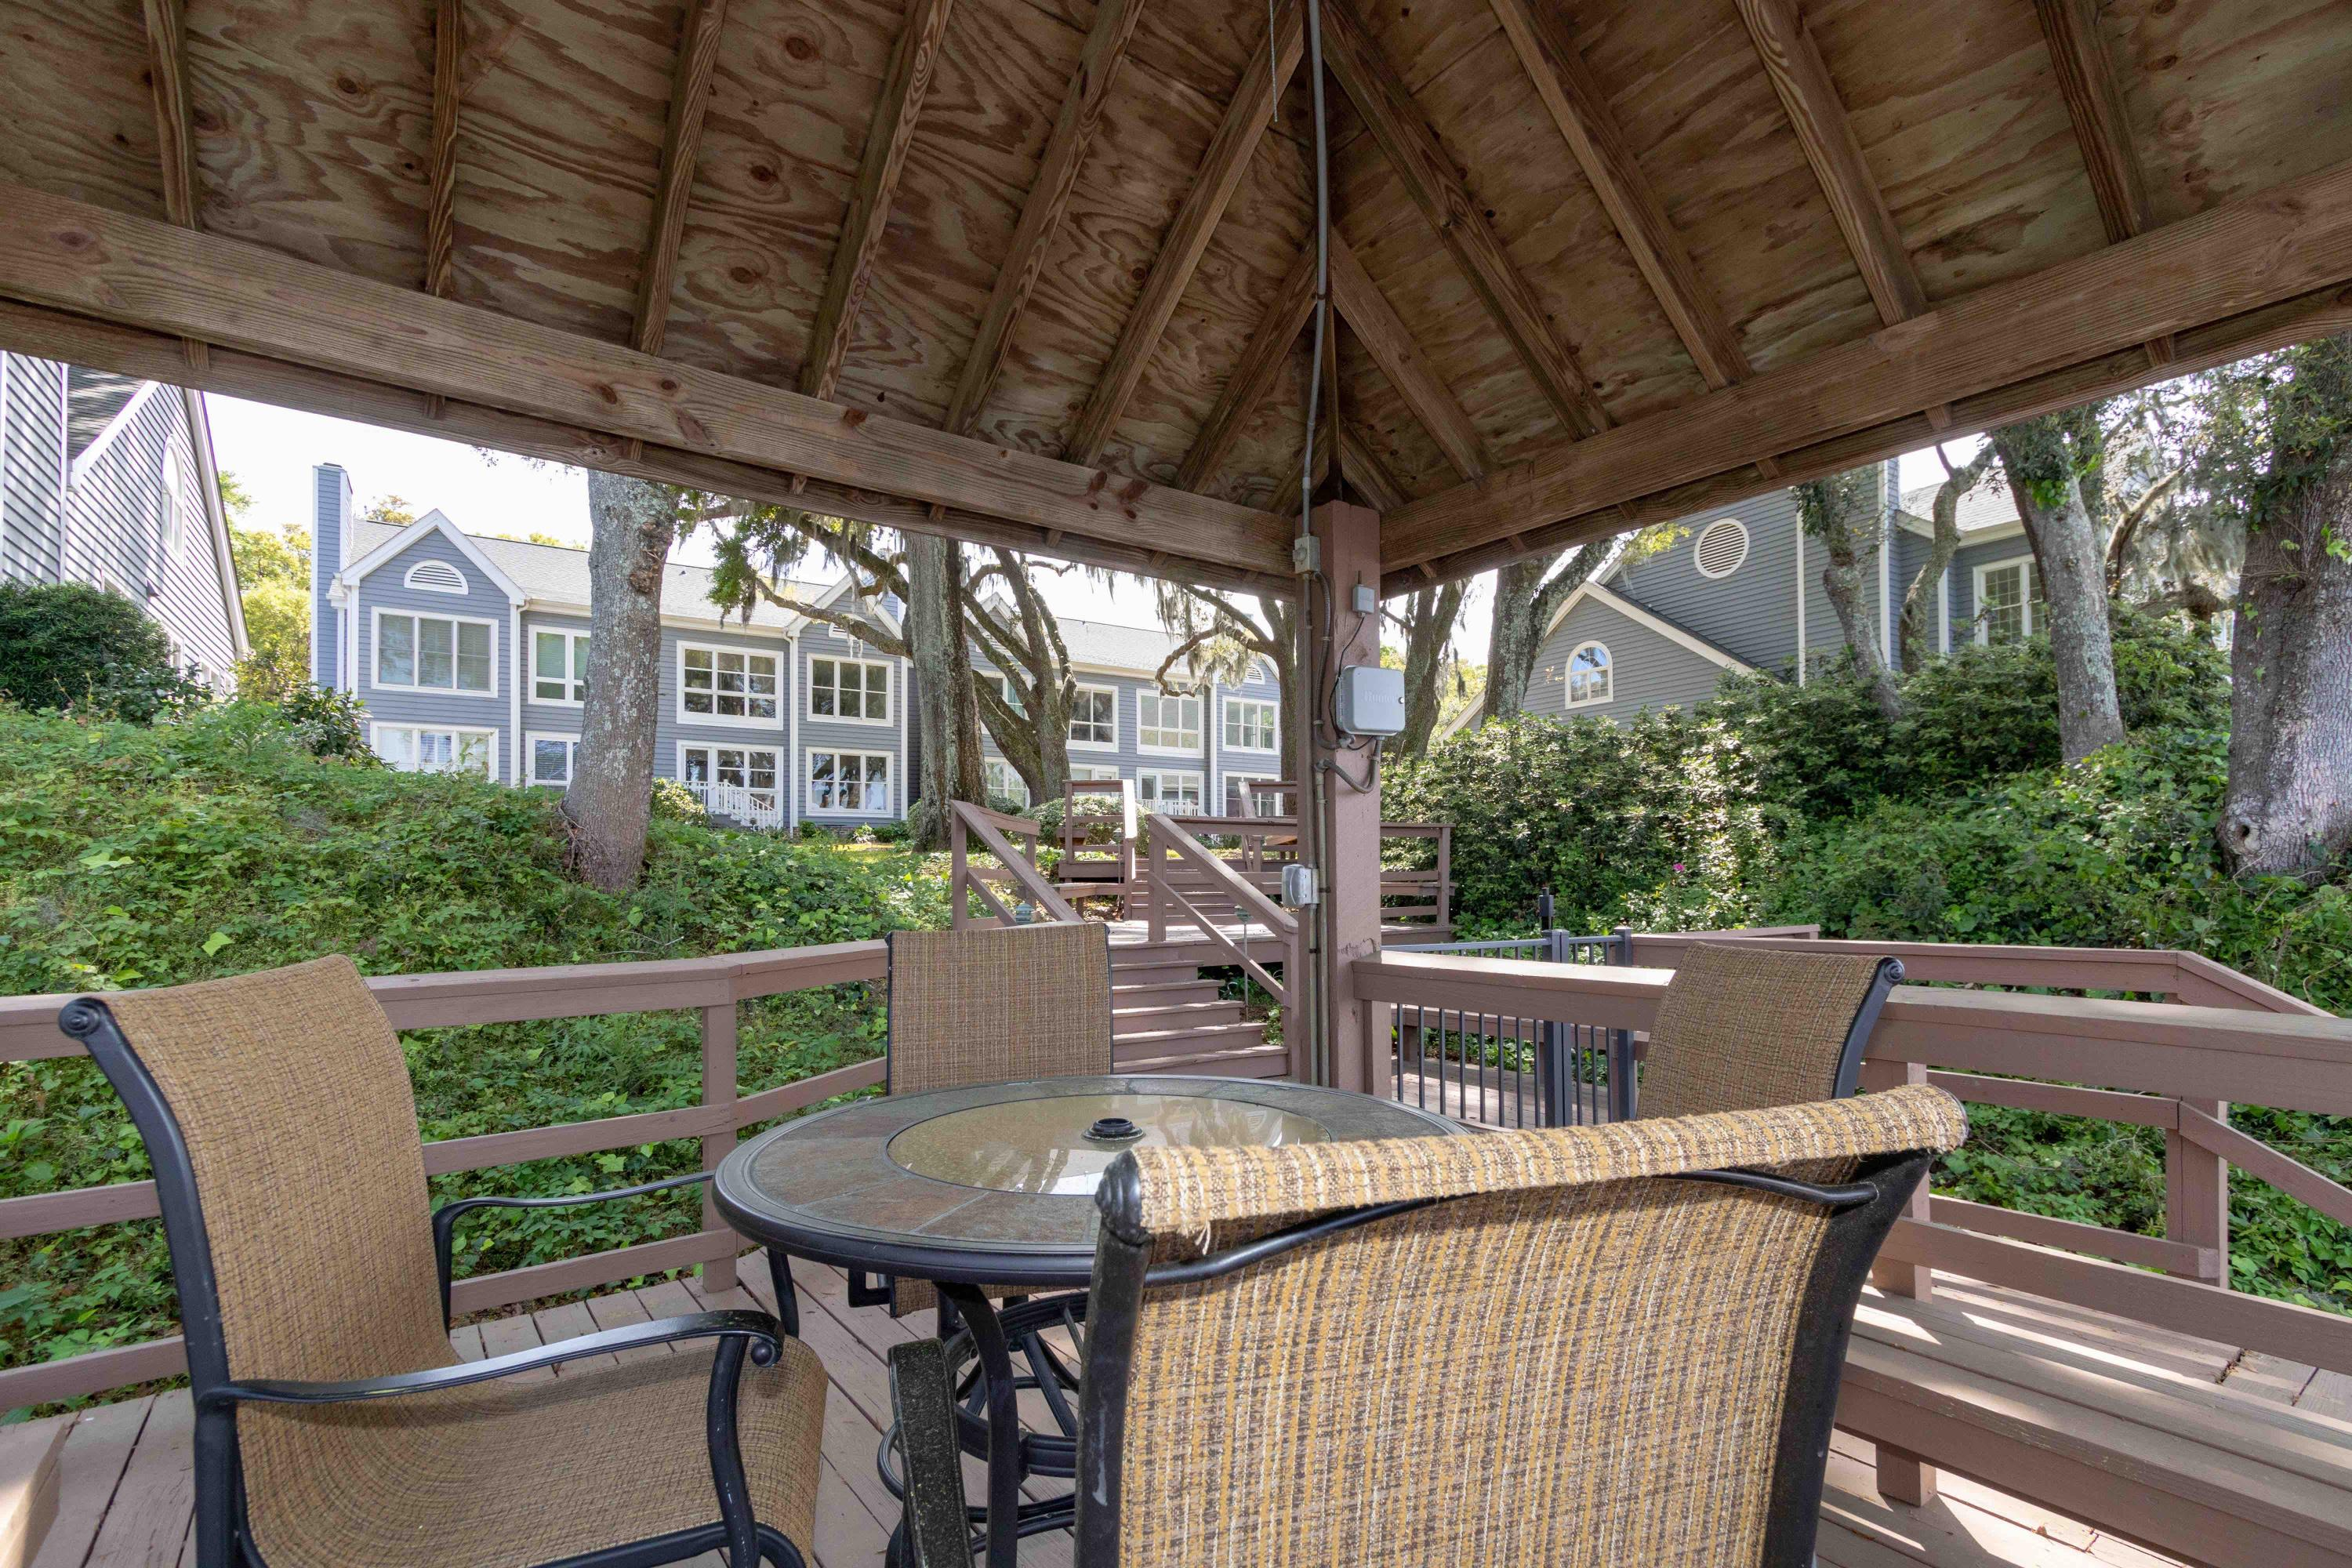 Waterfront Plantation Homes For Sale - 107 Waterfront Plantation, Charleston, SC - 30